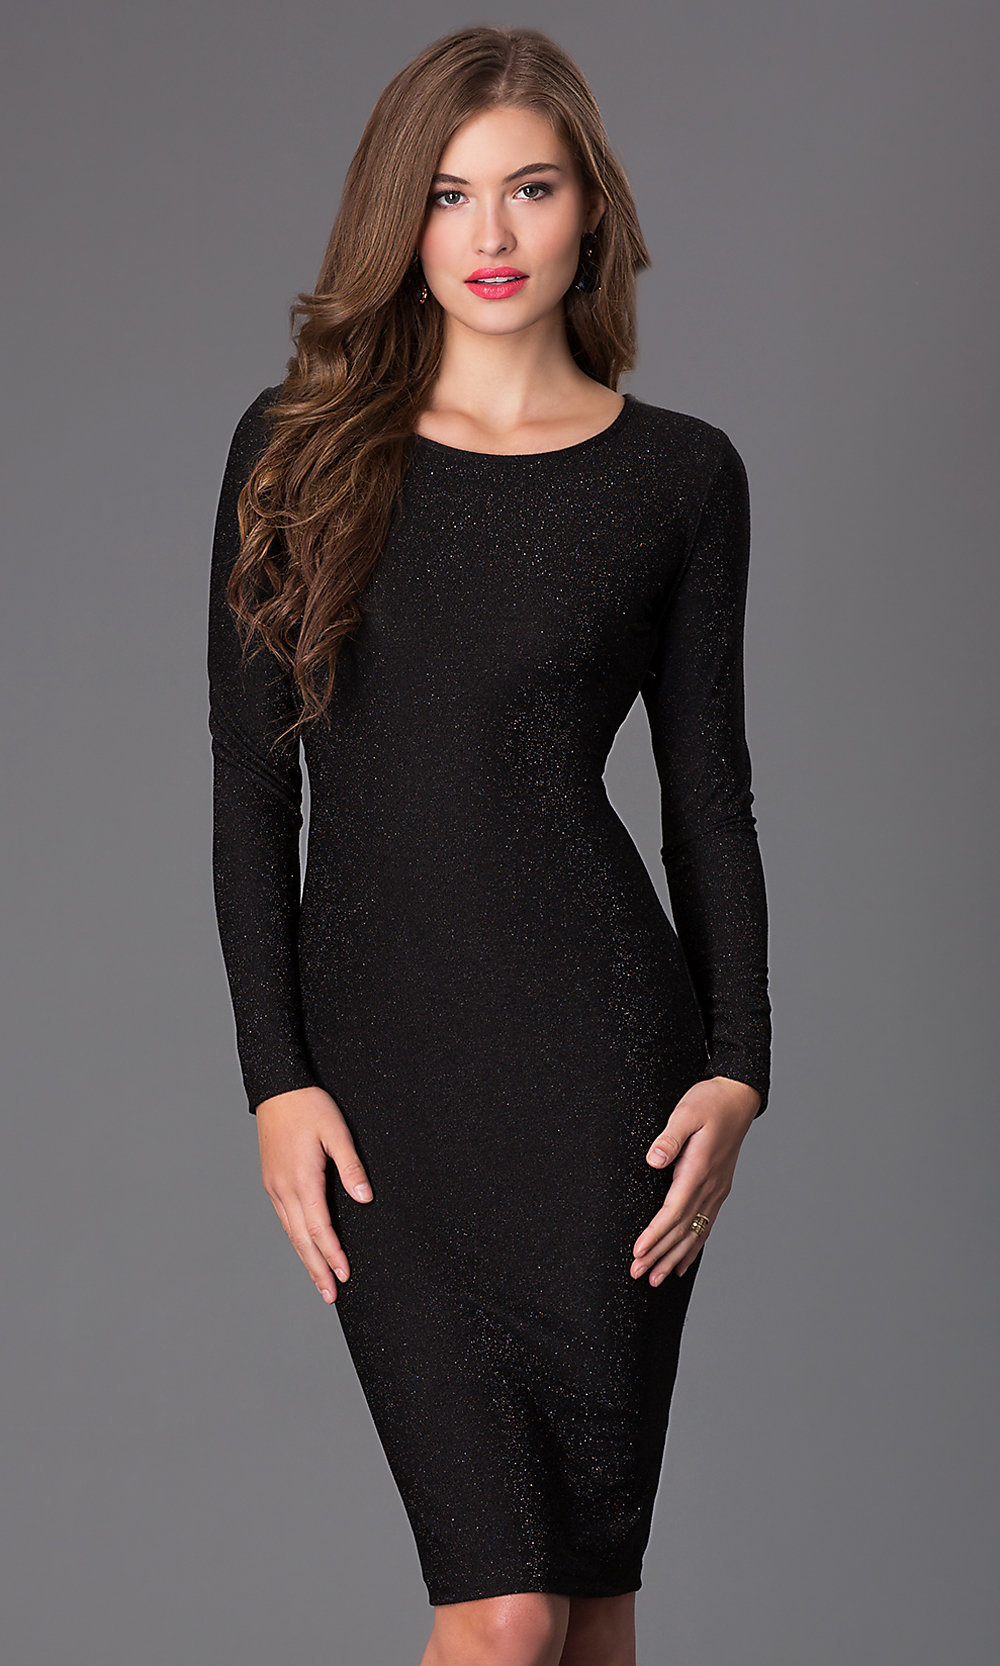 Long Sleeve Knee Length Black Dress - PromGirl